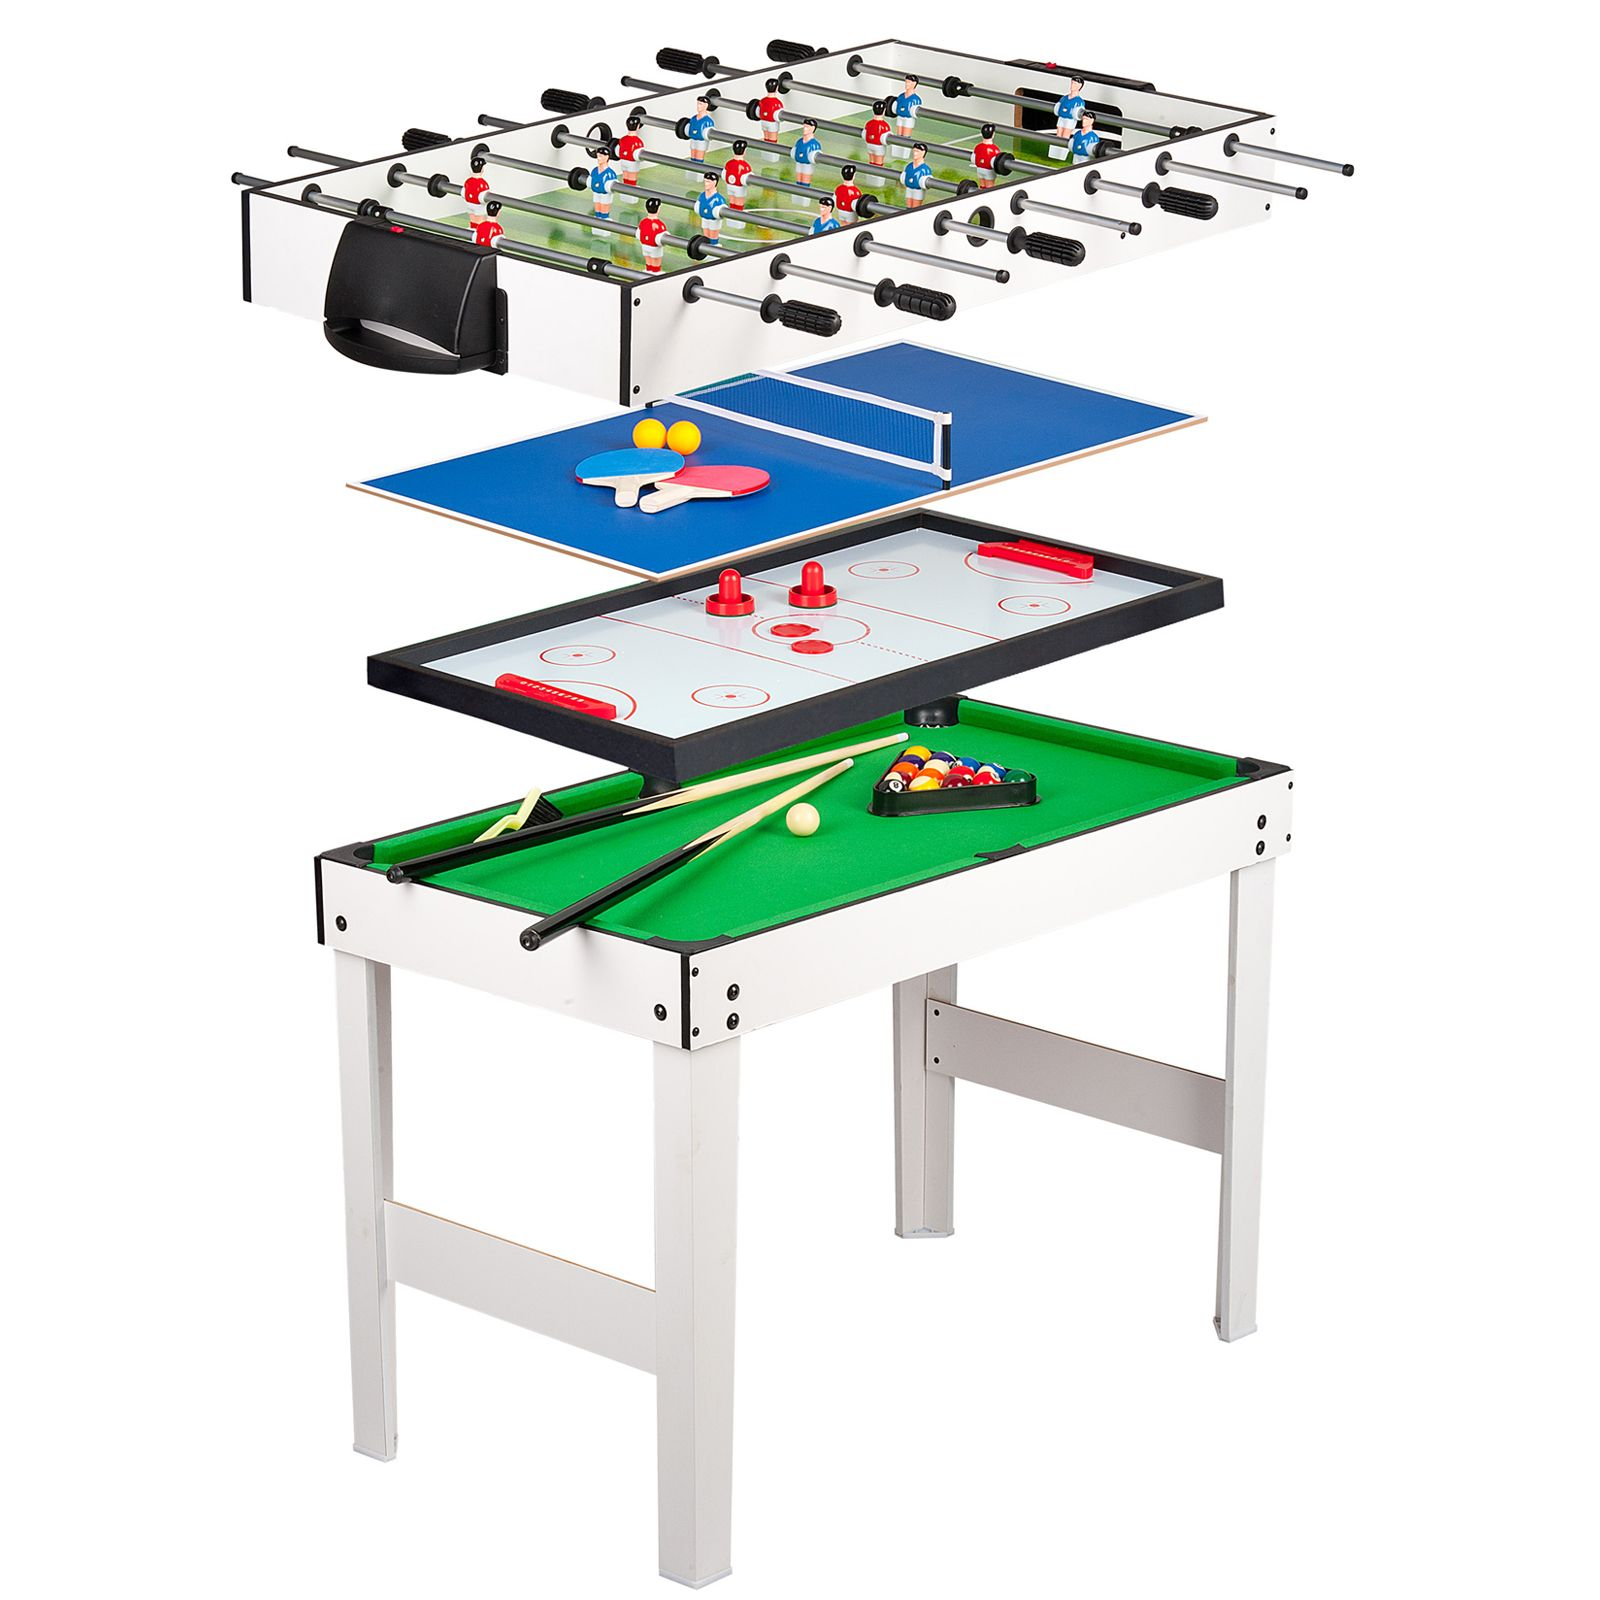 kids games tables football and pool tables play sets indoor sport free p p ebay. Black Bedroom Furniture Sets. Home Design Ideas